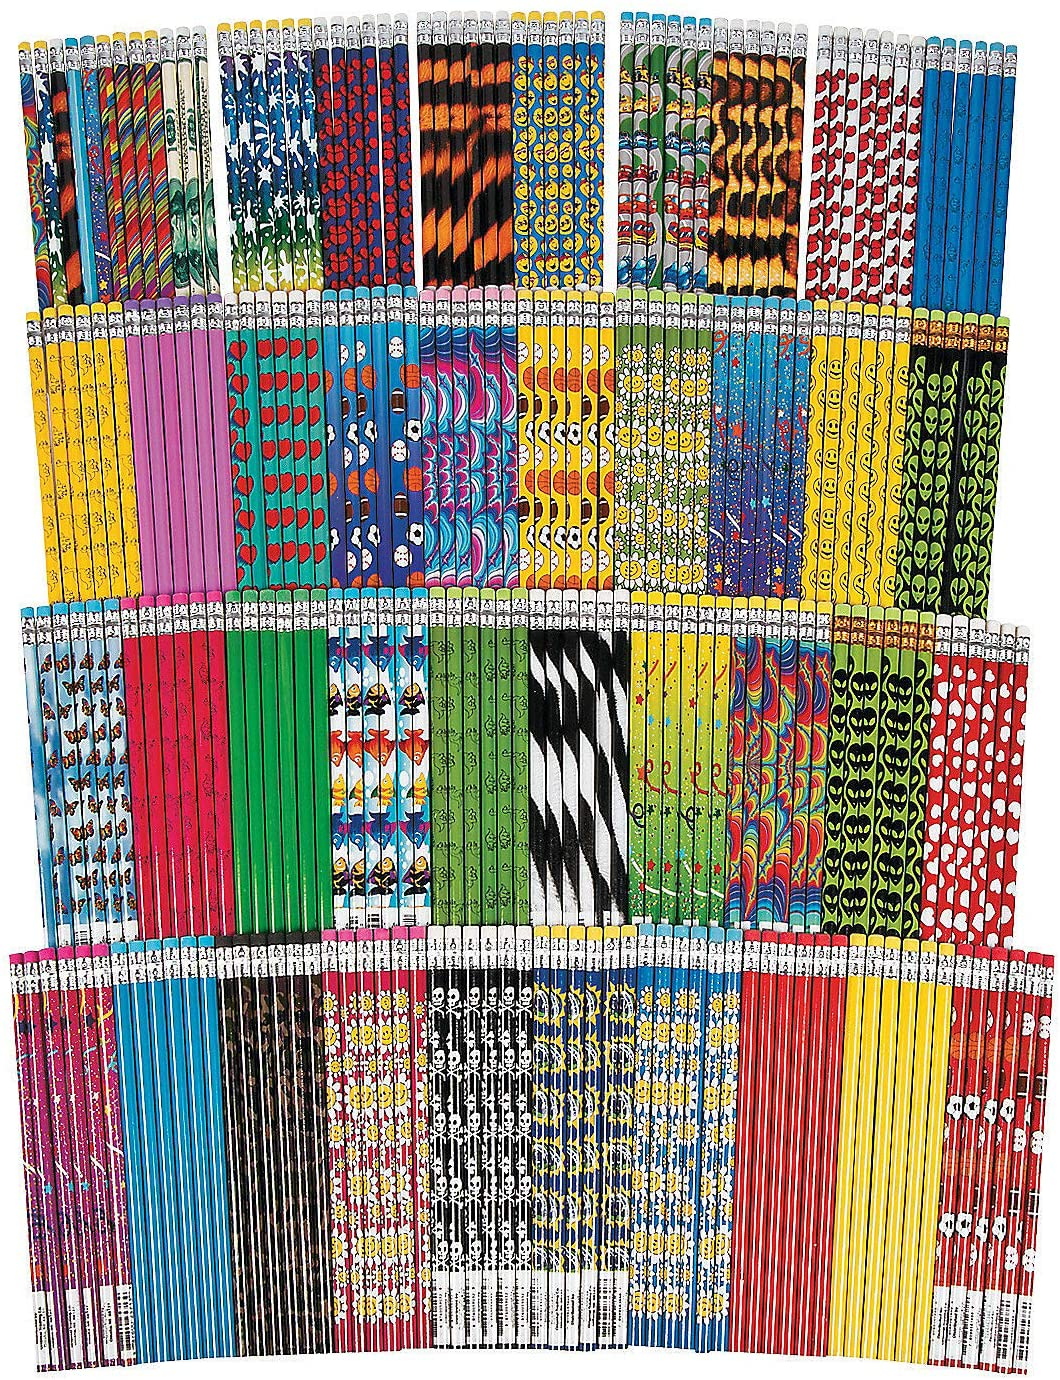 Mega Pencil Assortment | 250 Pieces | Favors, Giveaways, Rewards, Gifts, Takeaways, Kid's Birthday, Vacation Bible School, Christmas, Easter, 100th Day of School